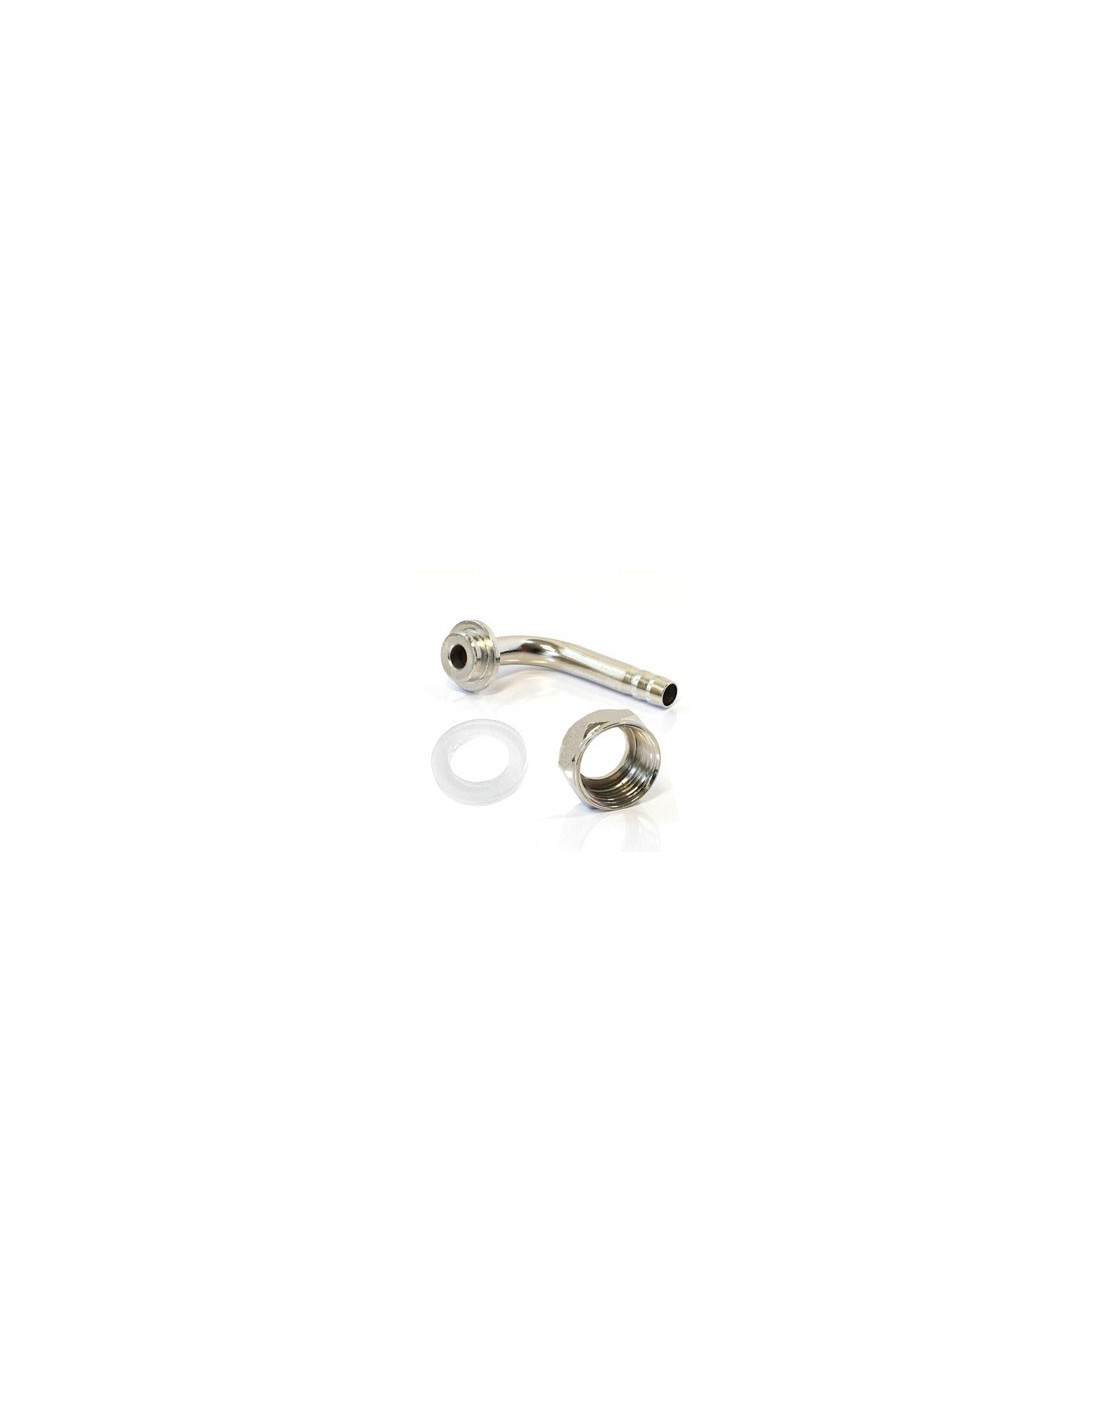 """OST02229 - G5/8"""" nut + angled barbed connector + gasket"""